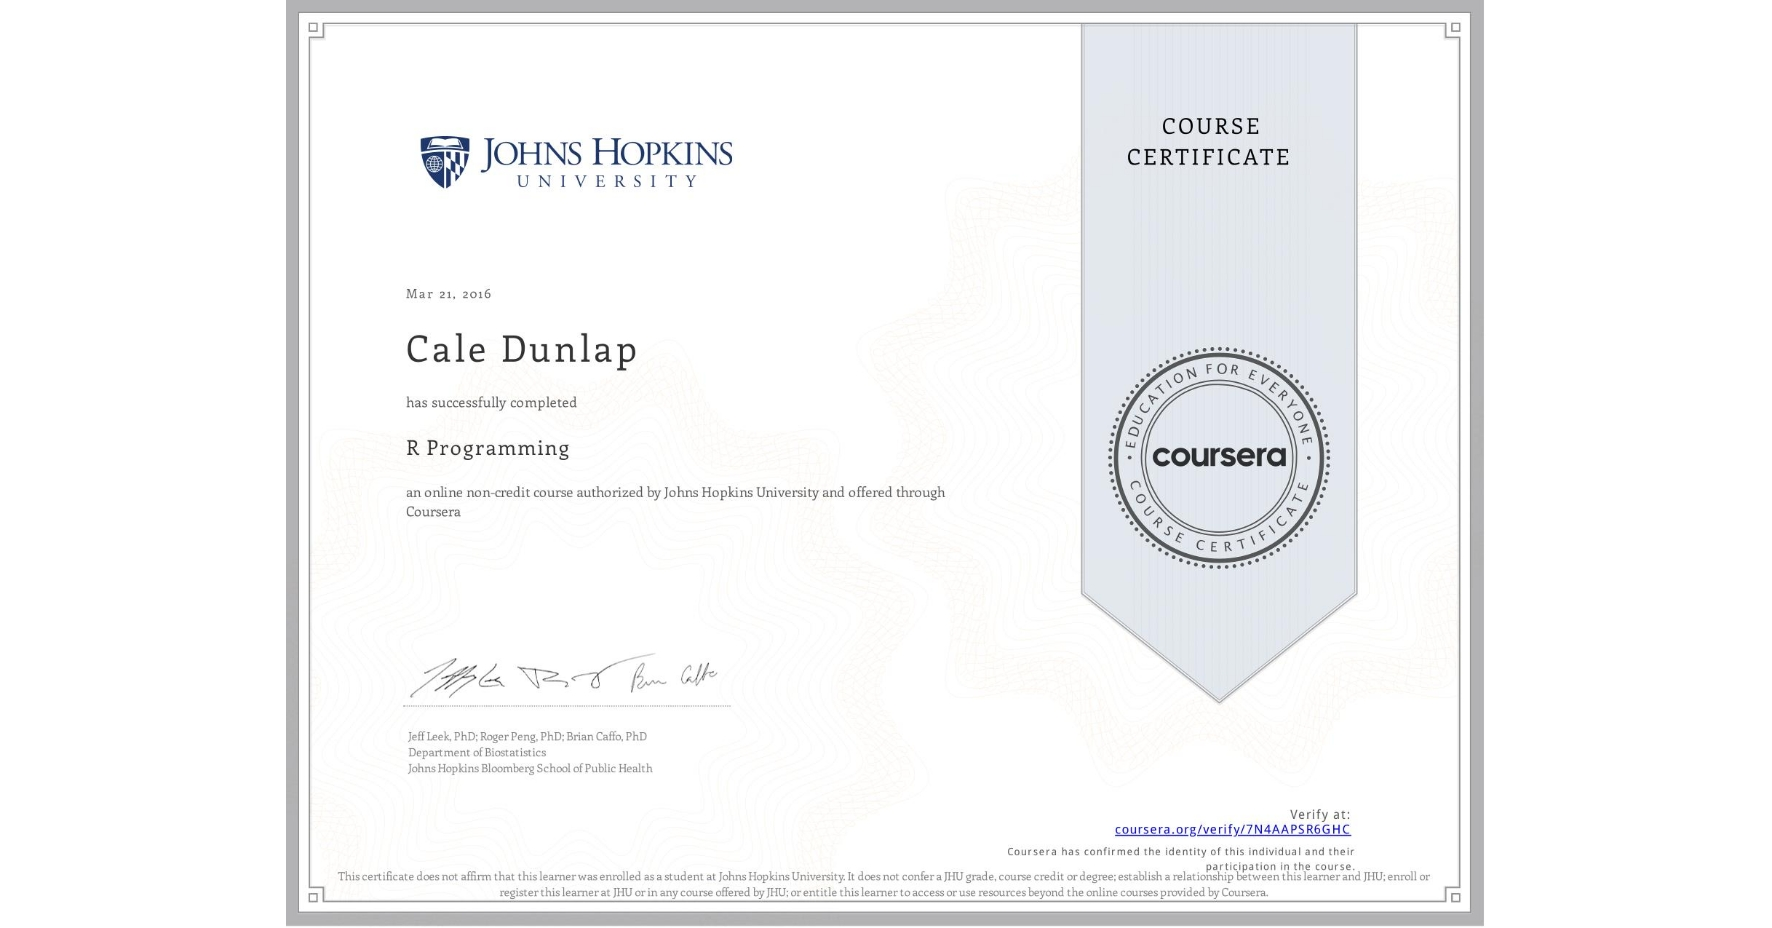 View certificate for Cale Dunlap, R Programming, an online non-credit course authorized by Johns Hopkins University and offered through Coursera